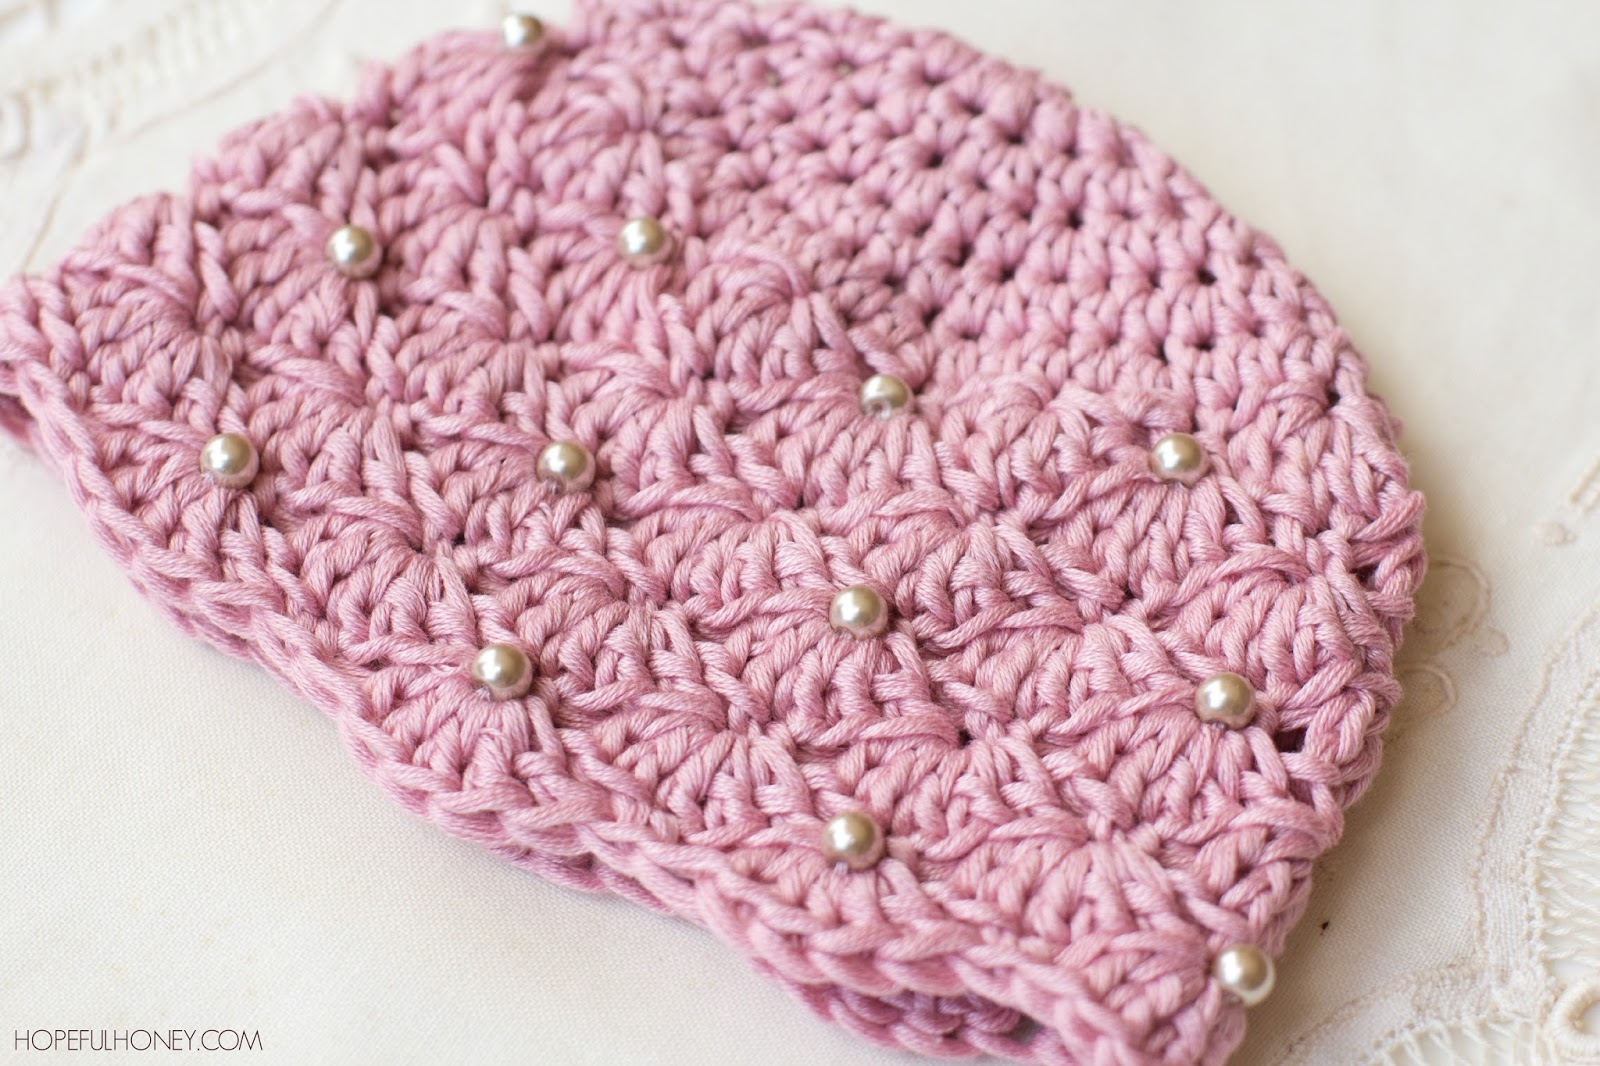 Crochet Baby Beanie Pattern Easy : Hopeful Honey Craft, Crochet, Create: Vintage Pearl Baby ...